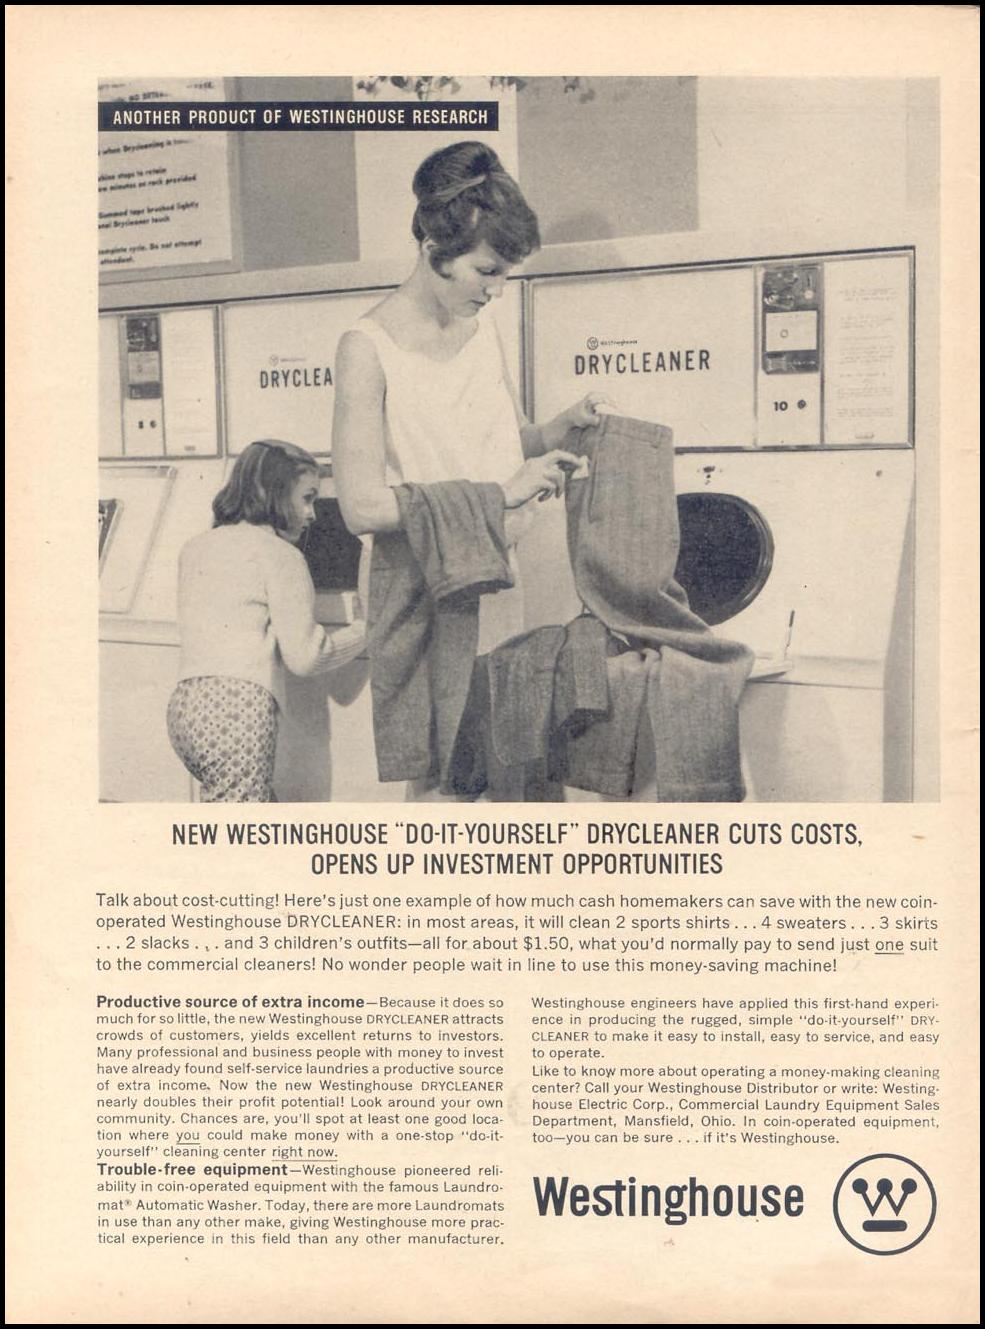 WESTINGHOUSE COIN-OPERATED DRYCLEANER TIME 11/17/1961 p. 8